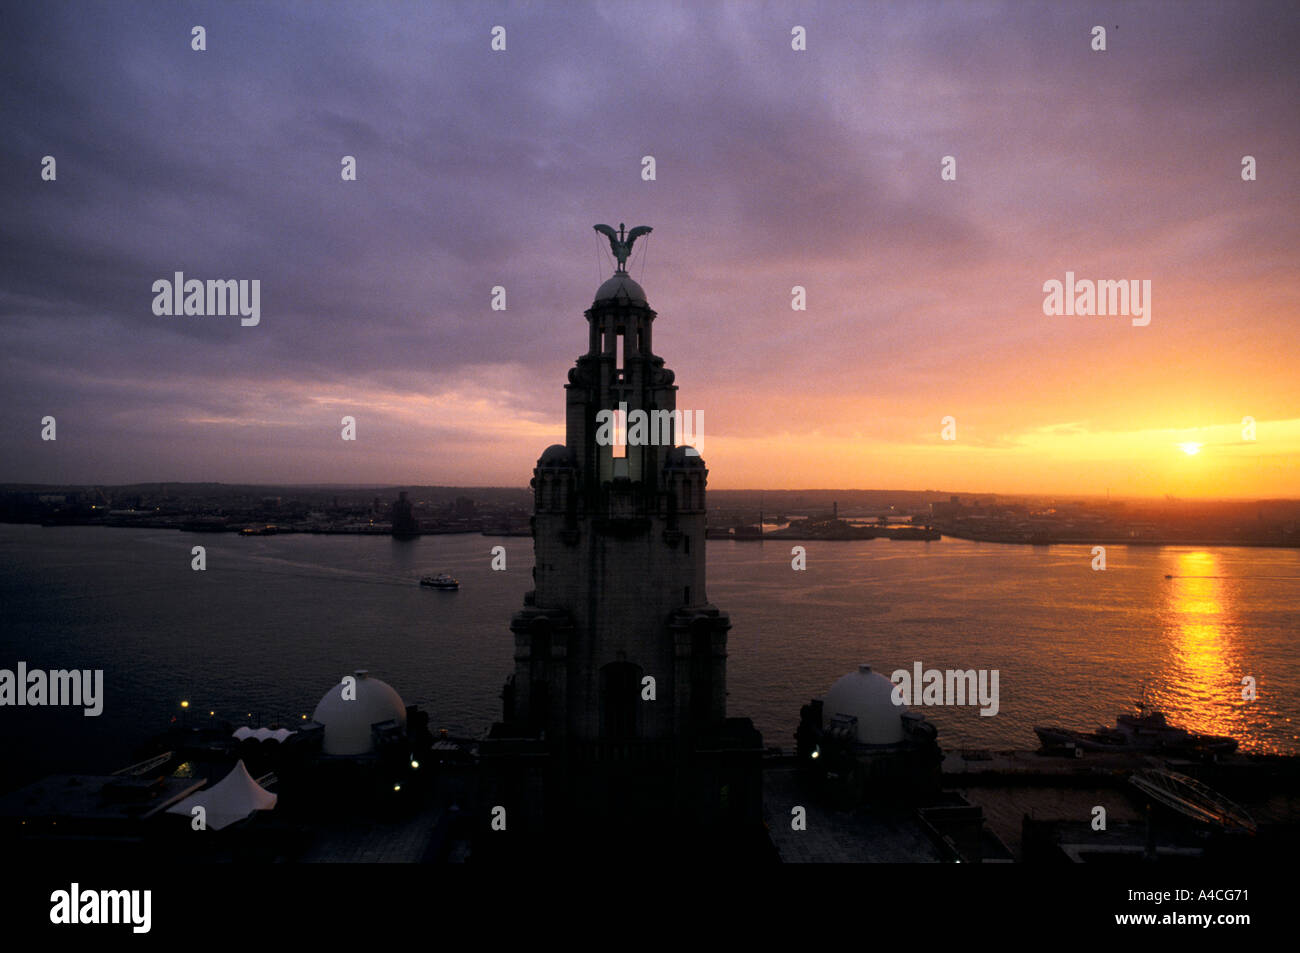 A LIVER BIRD ON TOP OF THE LIVER BUILDING IS SILHOUETTED AGAINST THE SKY AT SUNSET AT THE ALBERT DOCK, LIVERPOOL, ENGLAND - Stock Image